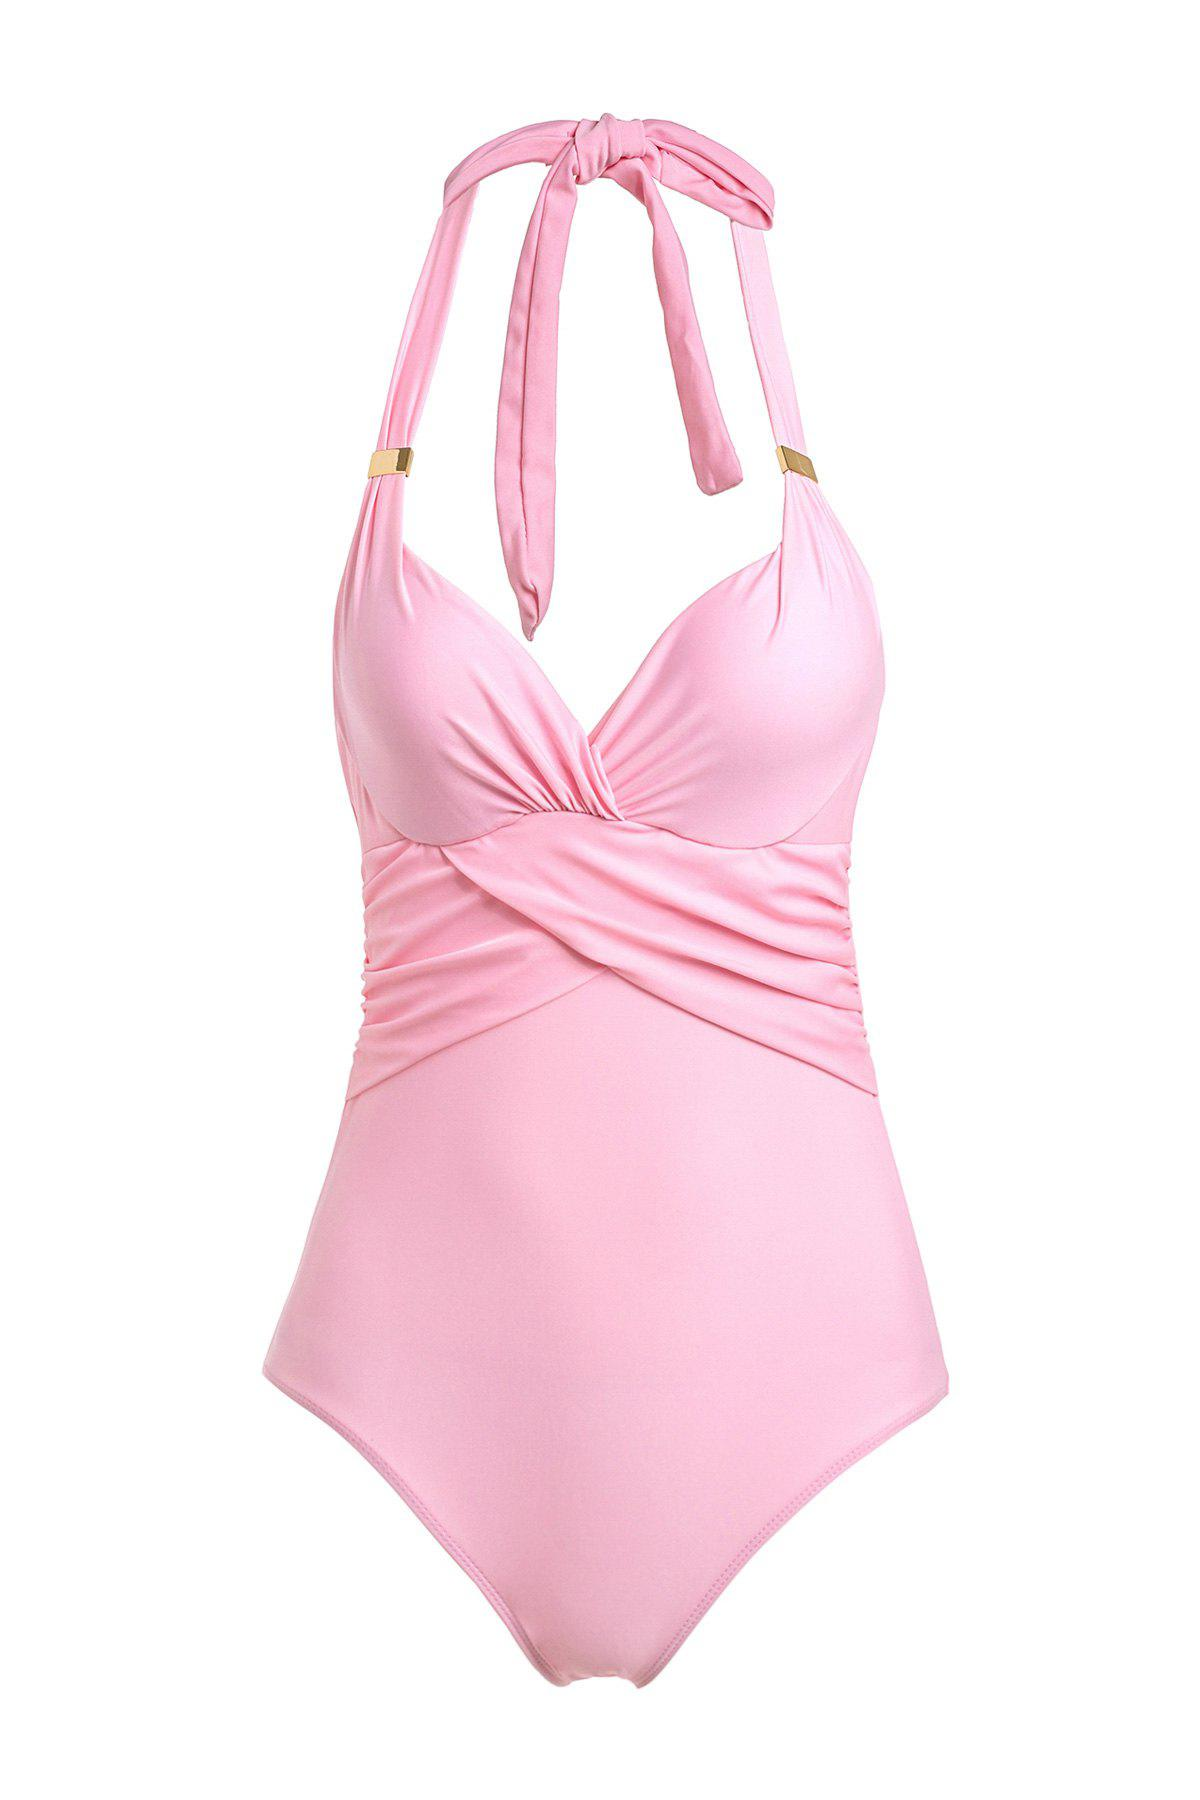 Fashionable One Piece Halter Solid Color Swimwear For Women